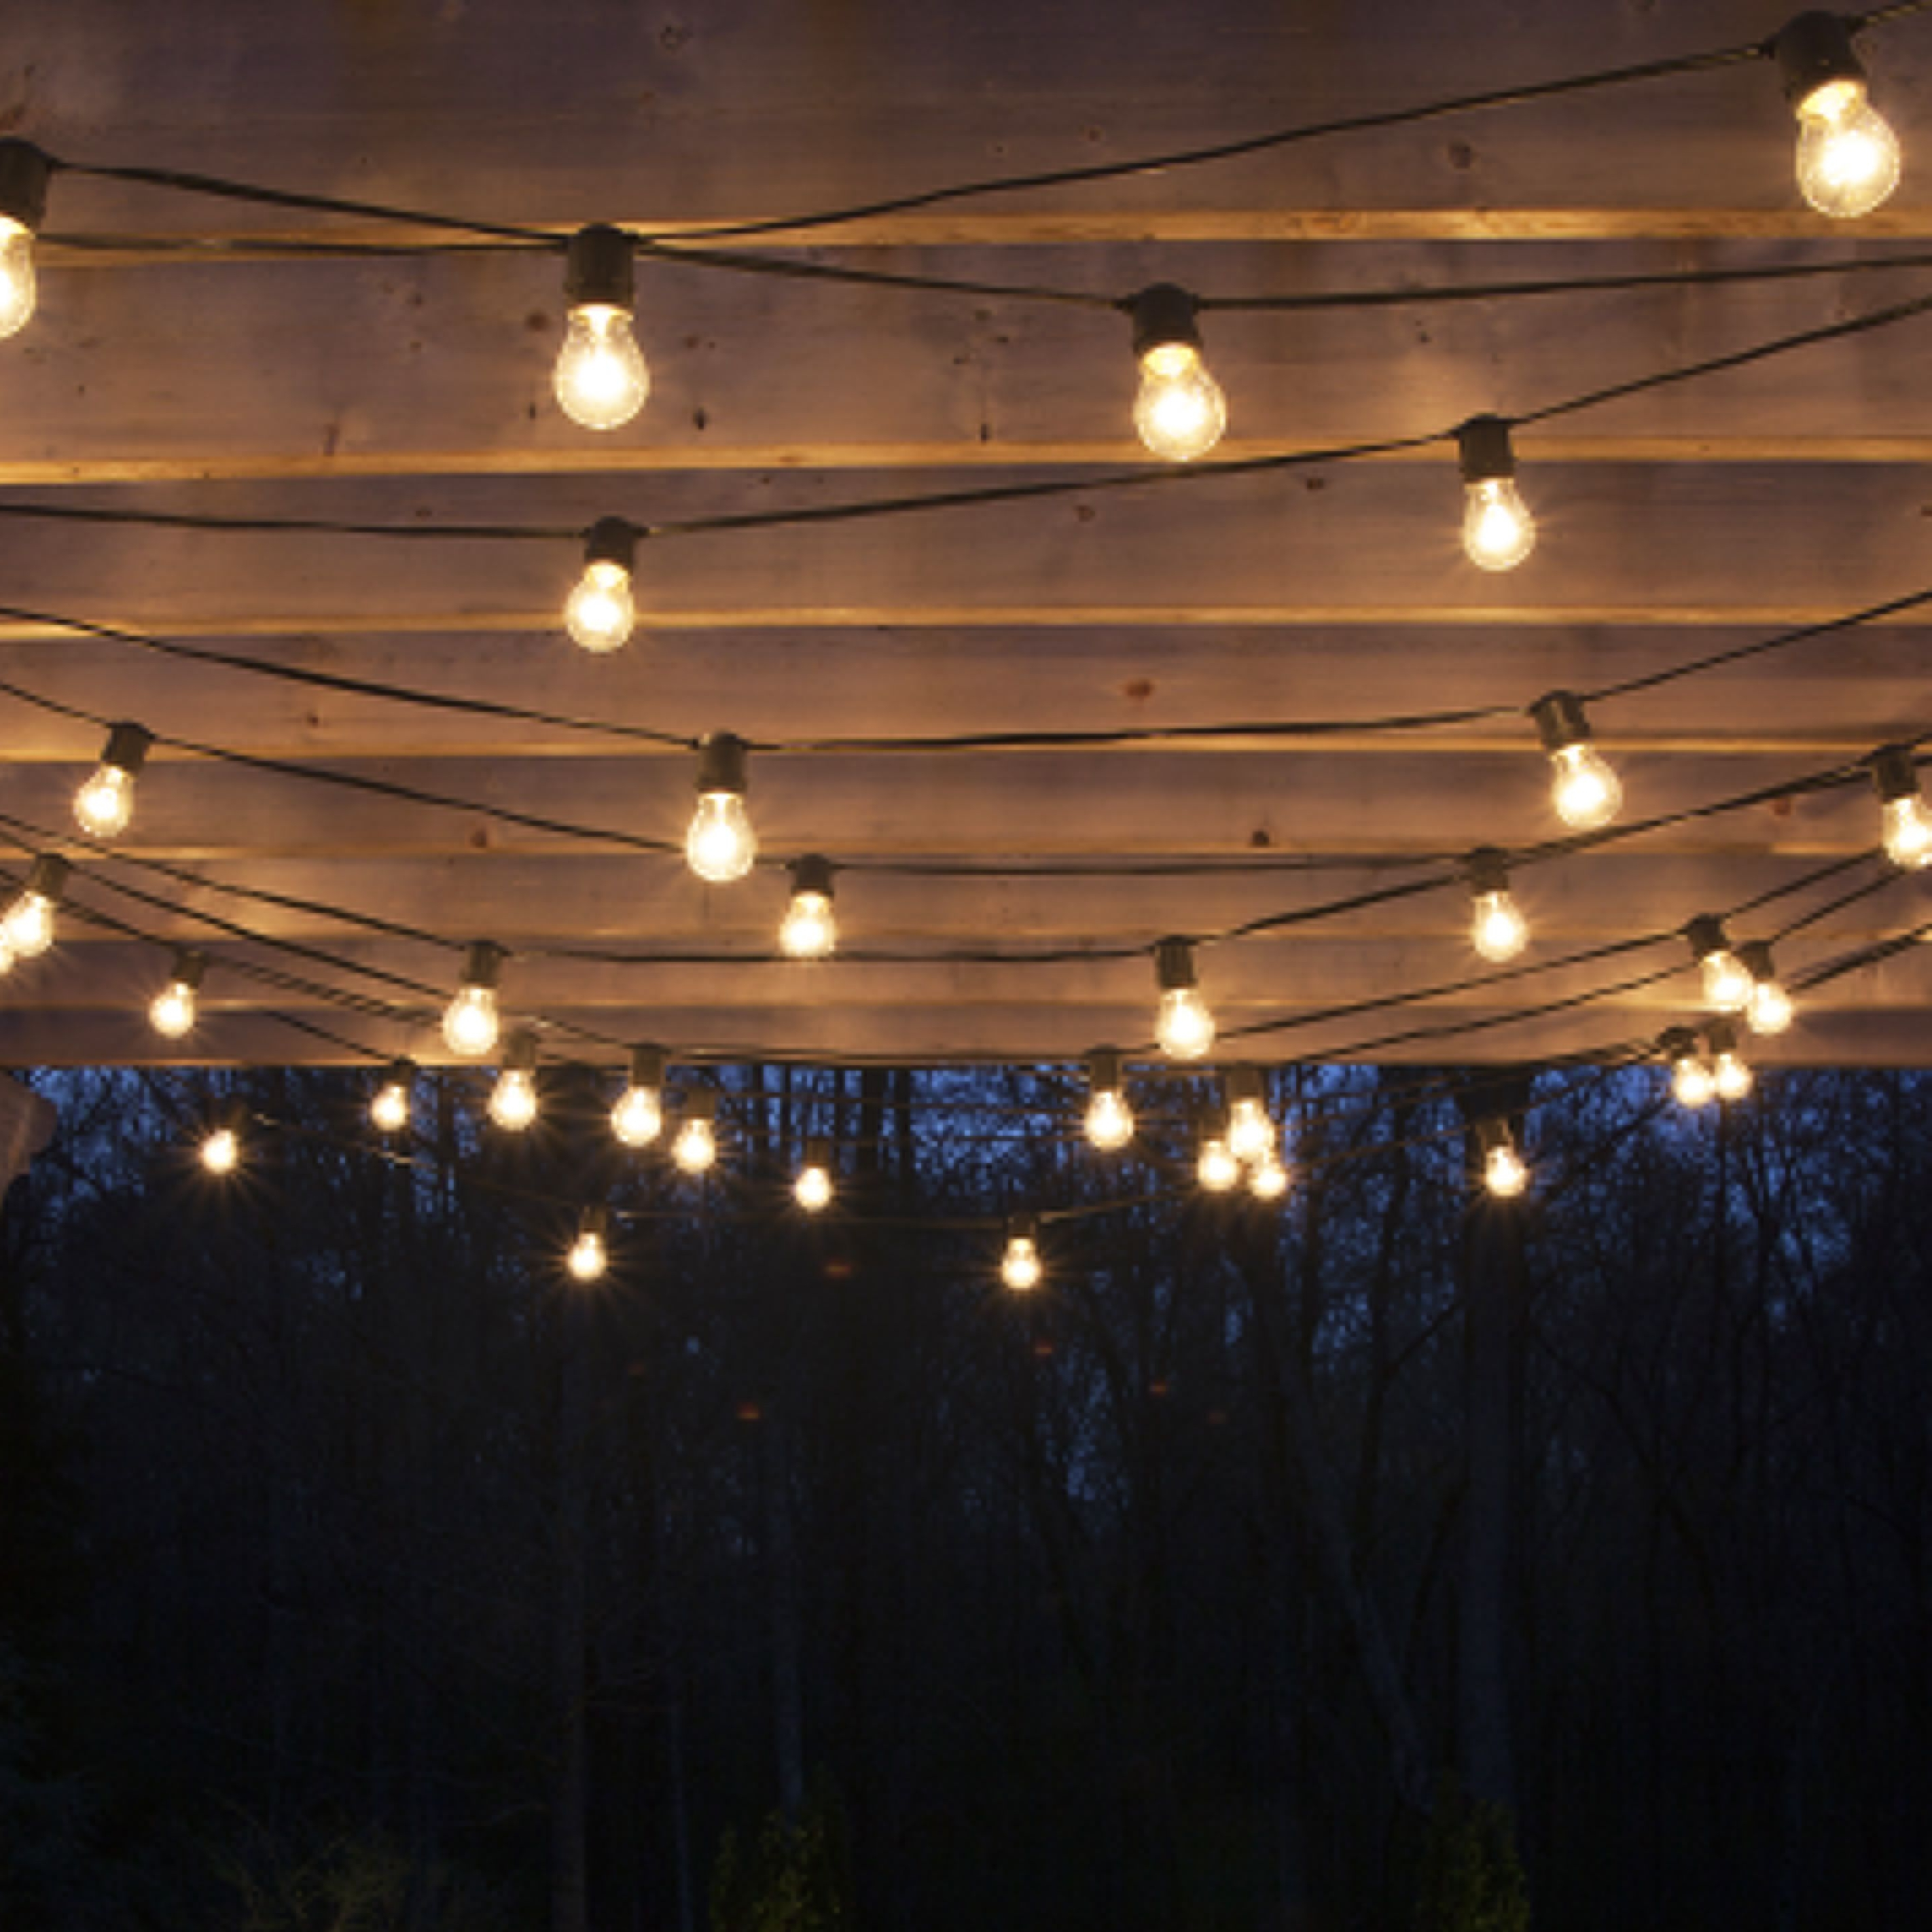 Patio Lighting, Pergolas And Patios Inside 2018 Outdoor Hanging Lights For Pergola (View 14 of 20)